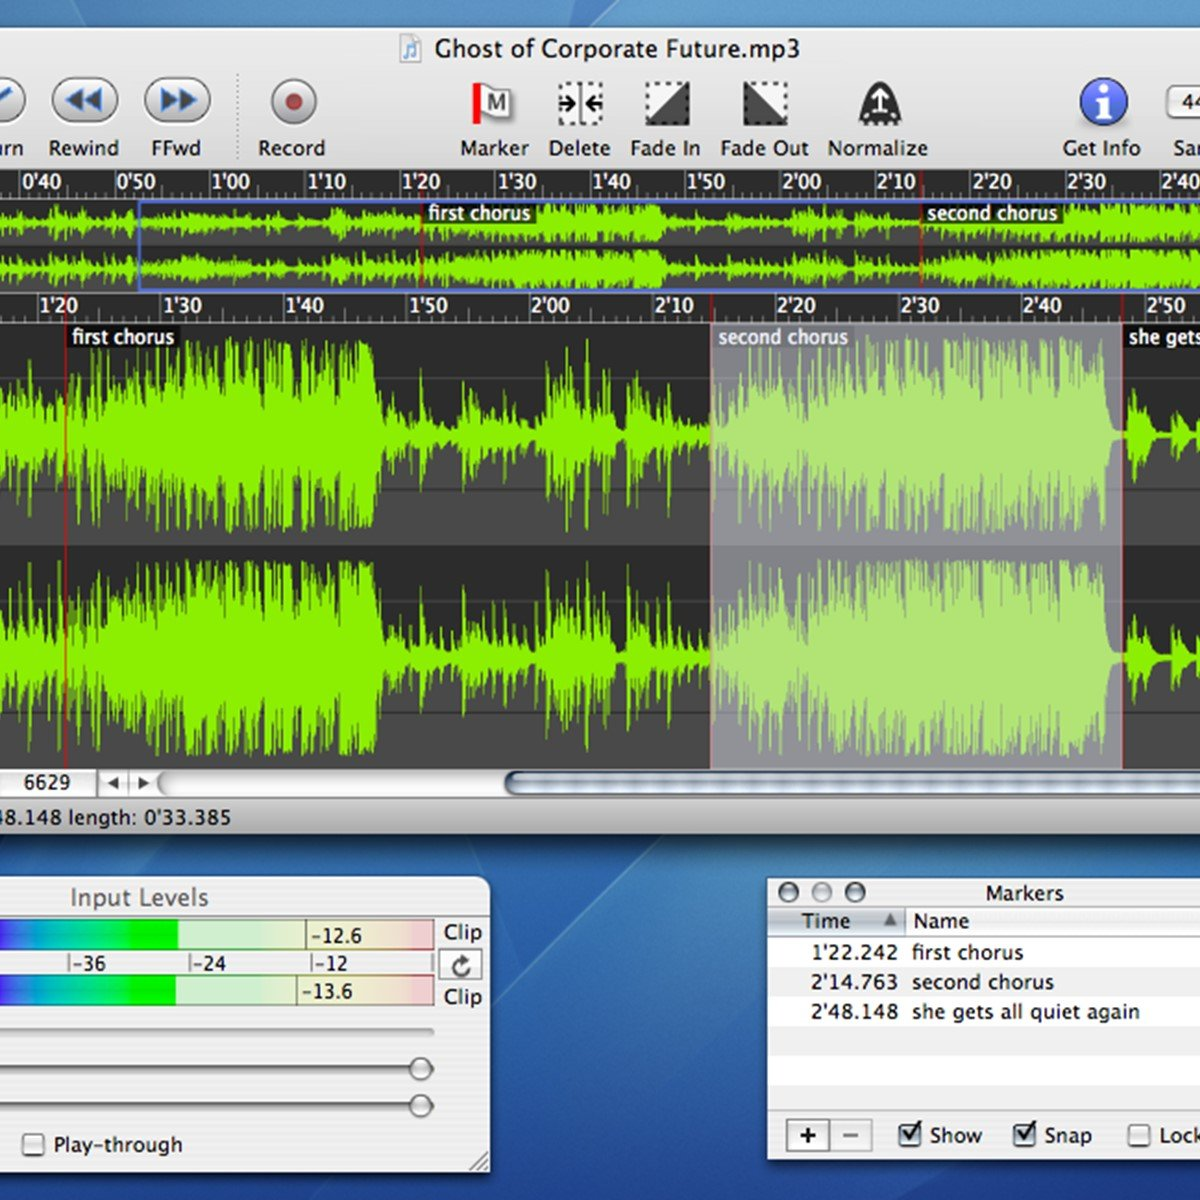 Sound Studio Alternatives: 30 similar apps and software